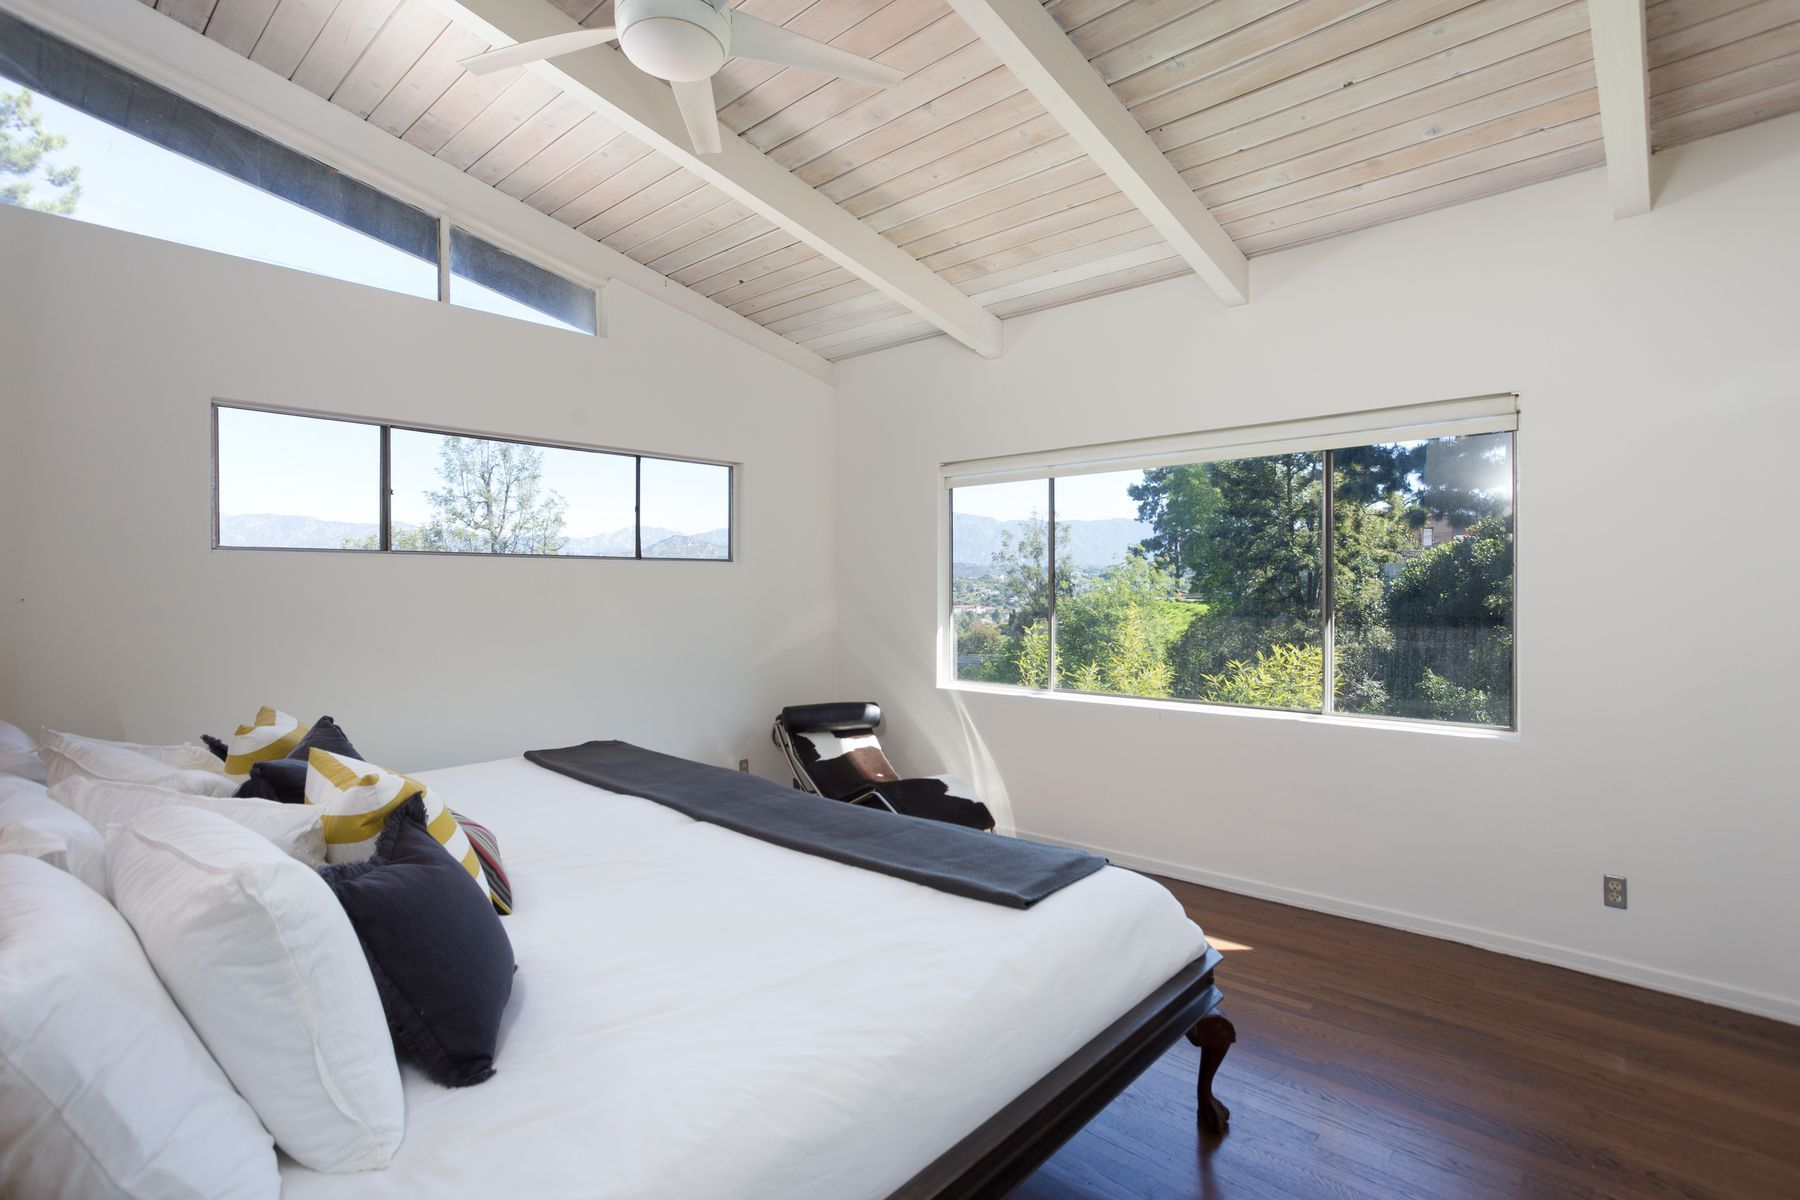 Midcentury modern house for sale in Mt. Washington for $1.1M - Curbed LA